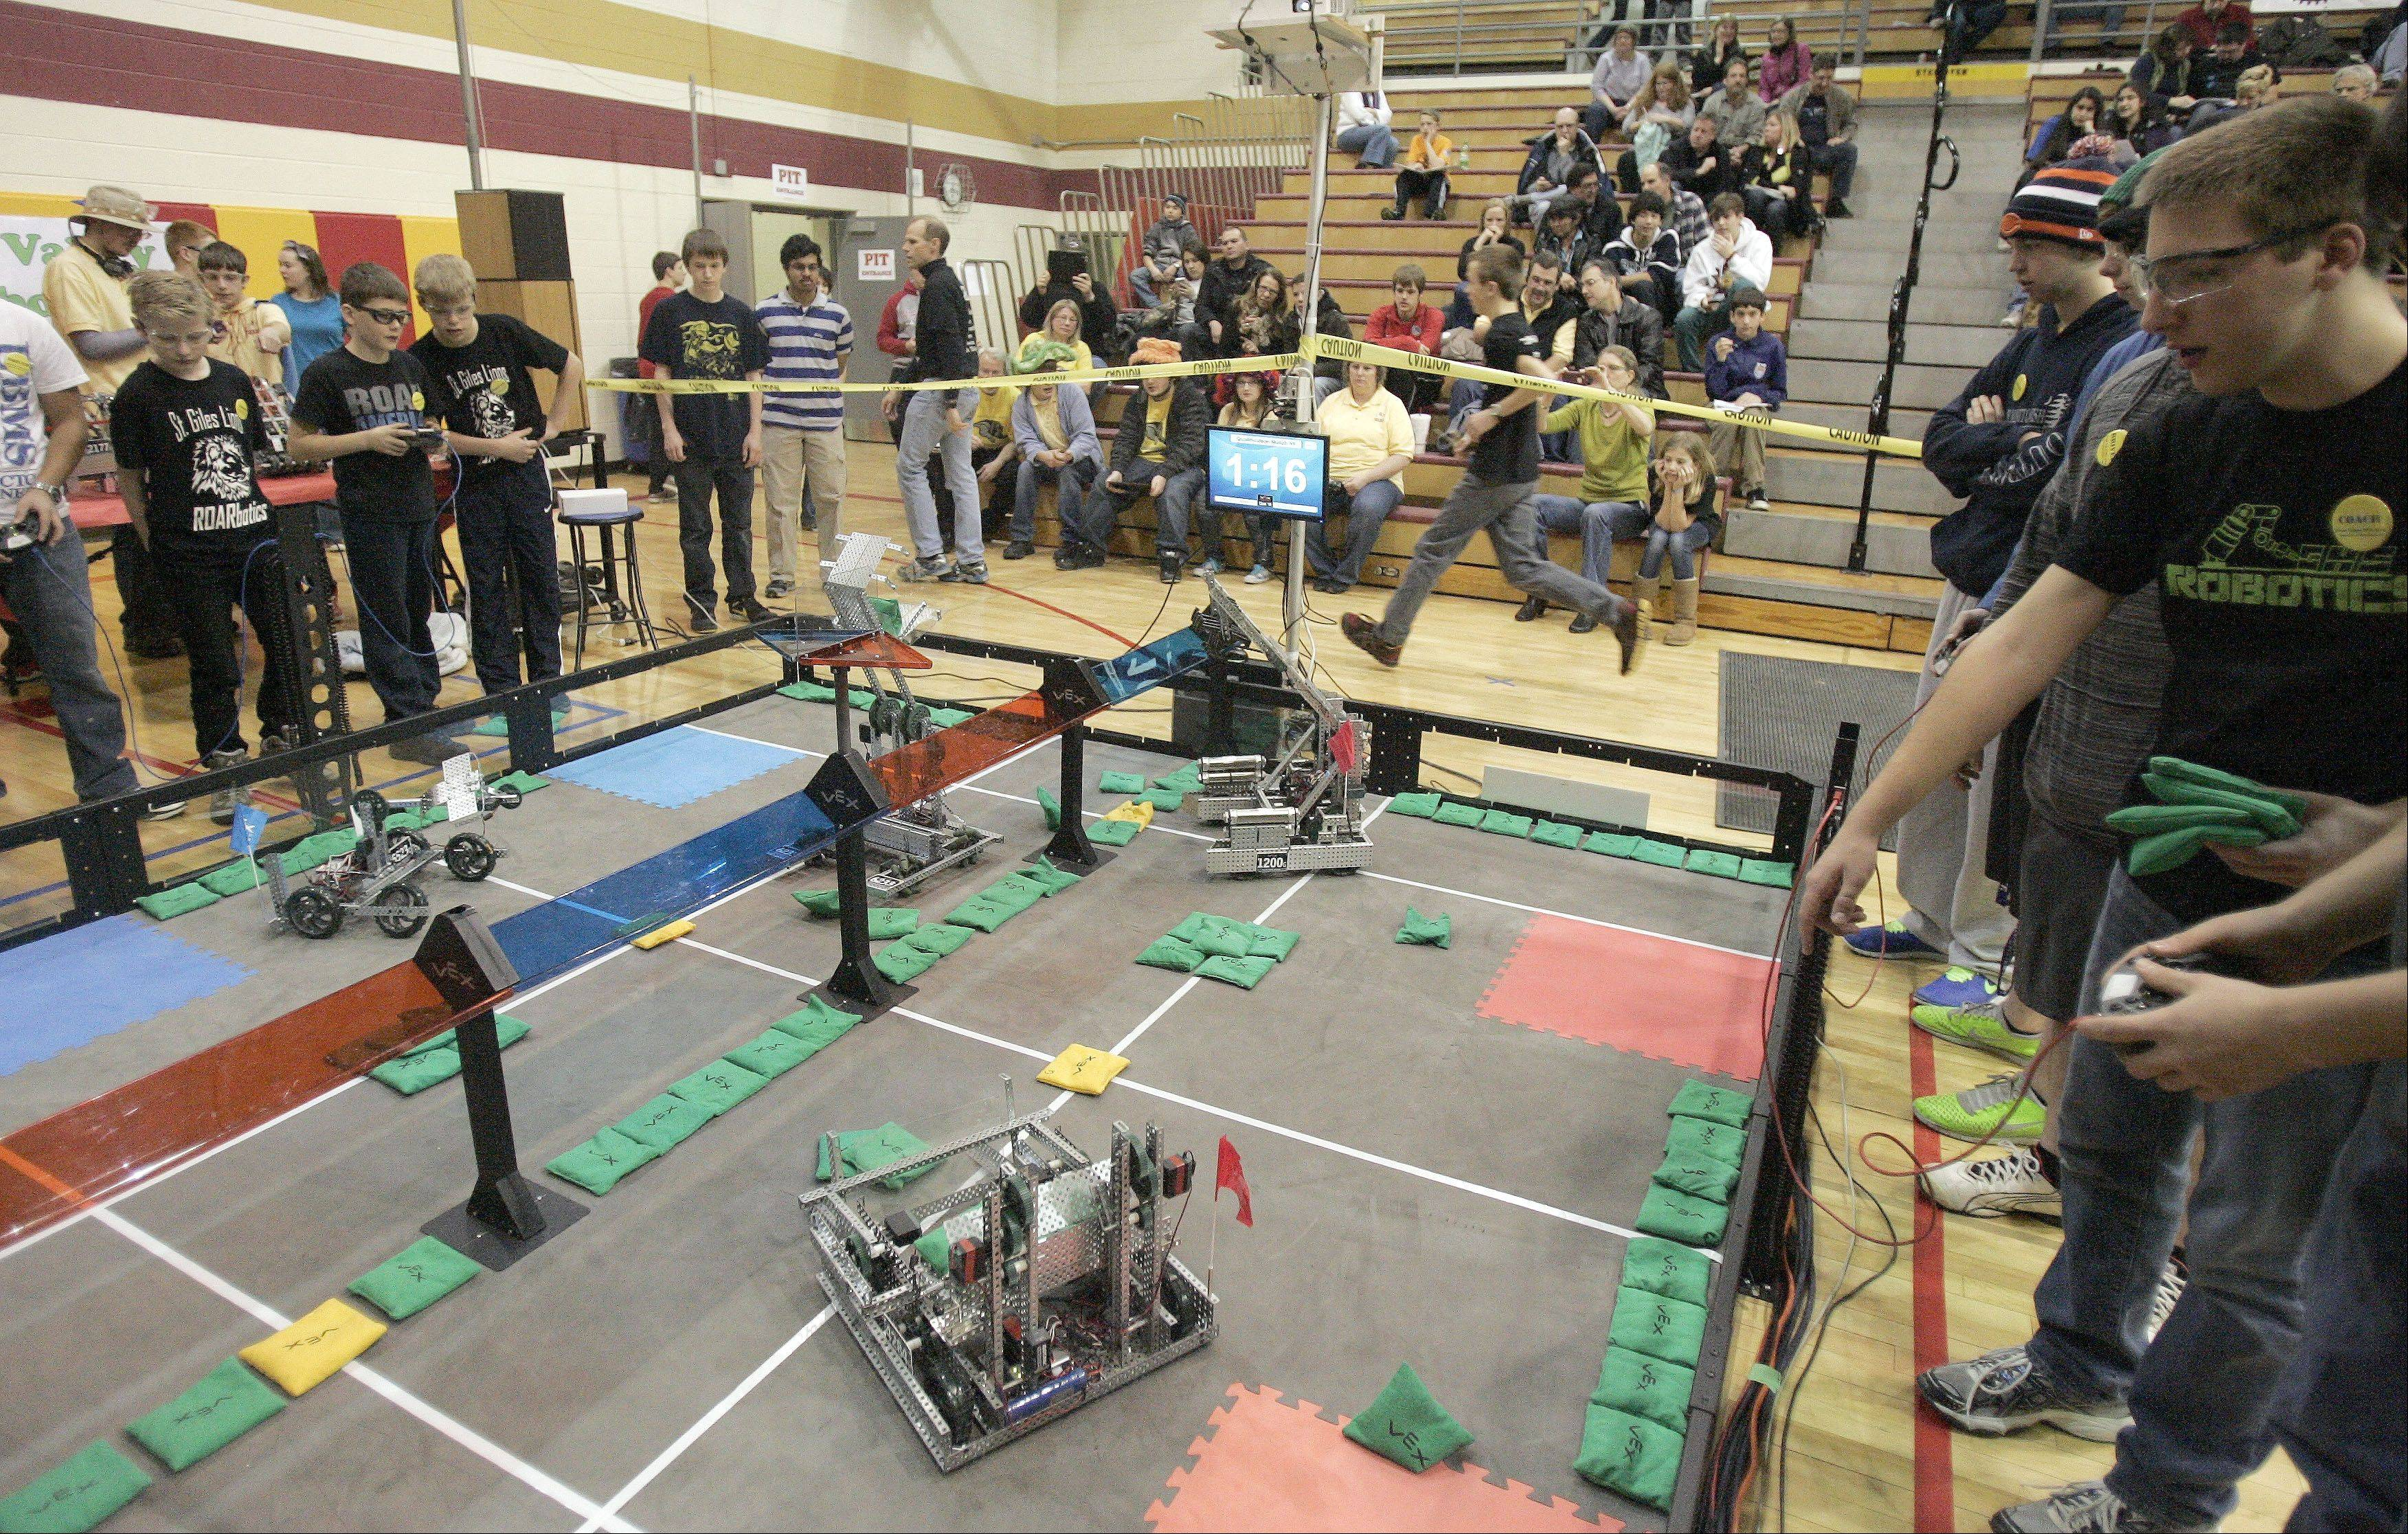 Brian Hill/bhill@dailyherald.comMore than 400 leading middle schools and high schools participated in the VEX Robotics contest at Rotolo Middle School in Batavia Saturday. The competition included 48 teams from the Midwest.